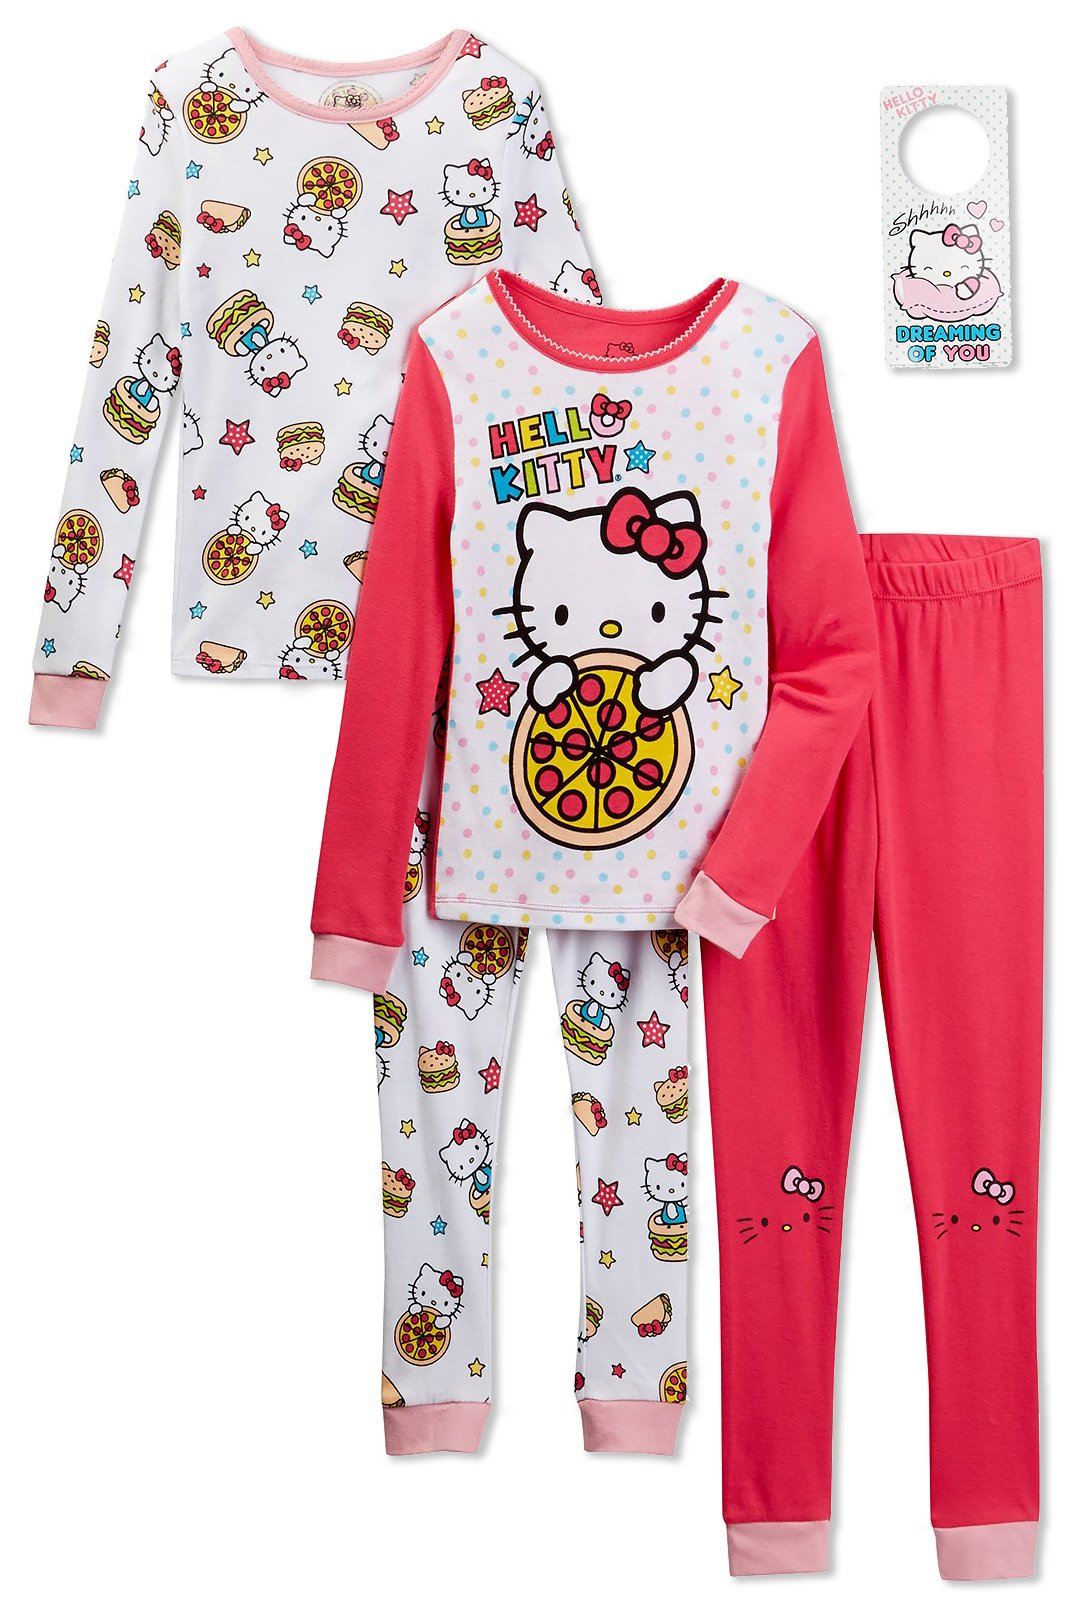 Hello Kitty Girls 4 Piece Cotton Pajama Set, Kids Size 6